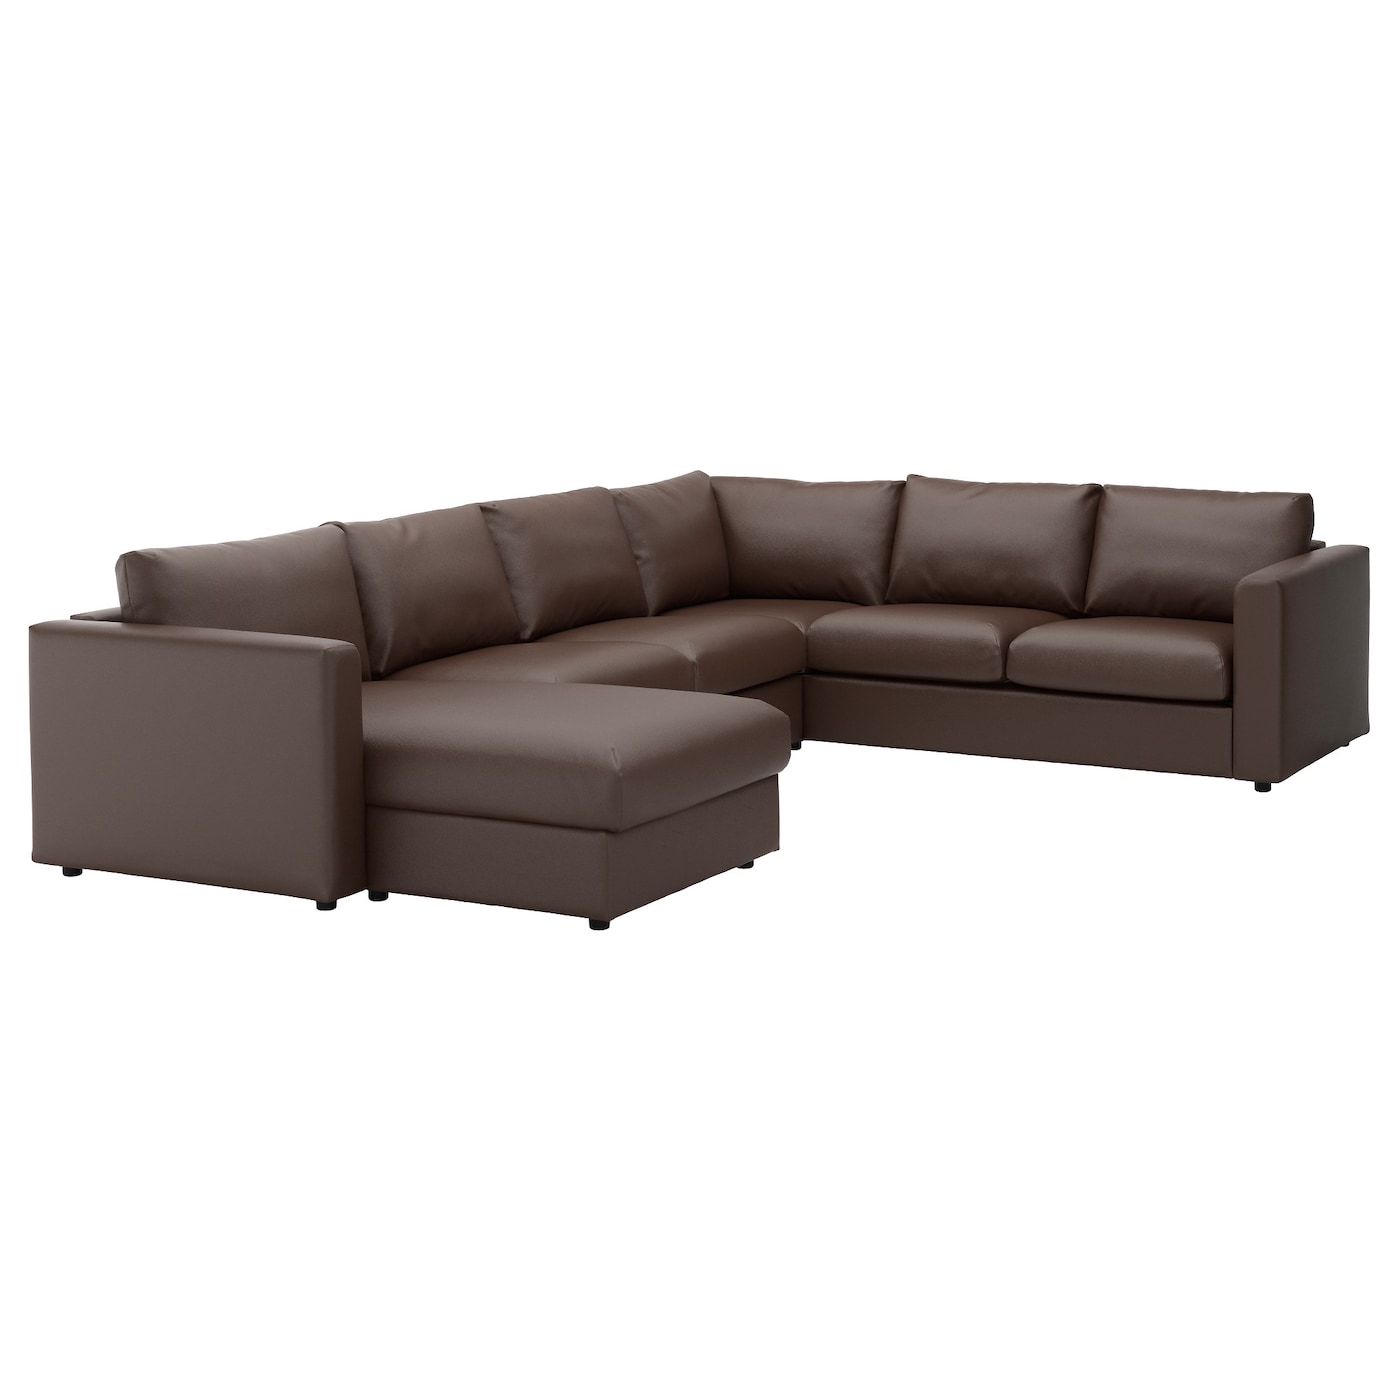 Vimle corner sofa 5 seat with chaise longue farsta dark for Brown chaise sofa